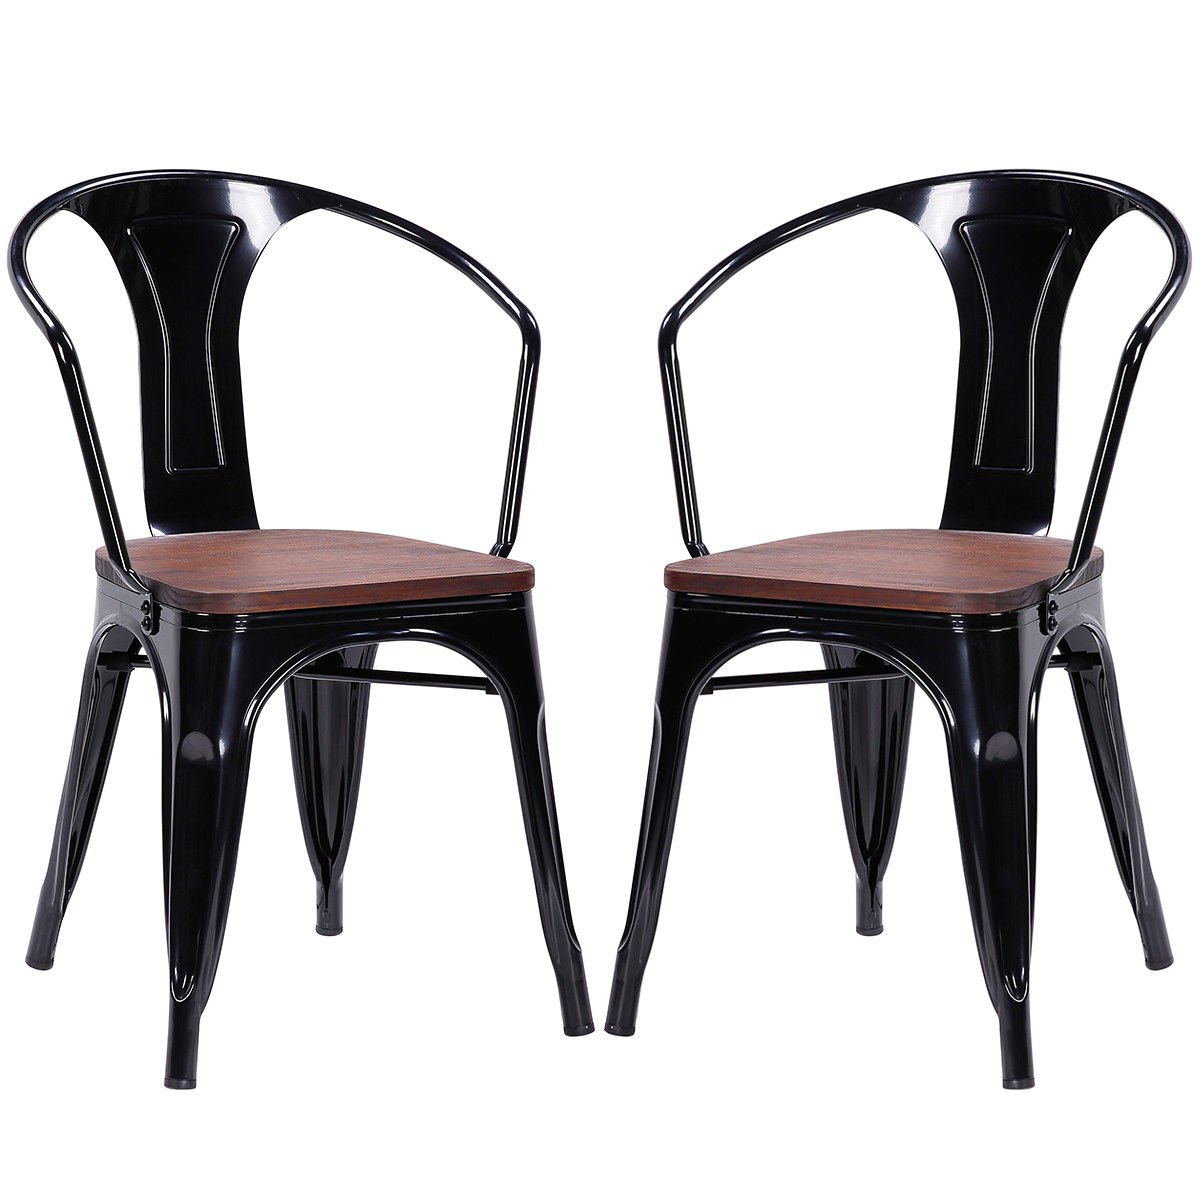 COSTWAY Metal Dining Chair Tolix Style Indoor Outdoor Use Armchair Stackable Bistro Cafe Chair Stackable Armchair, Set of 2